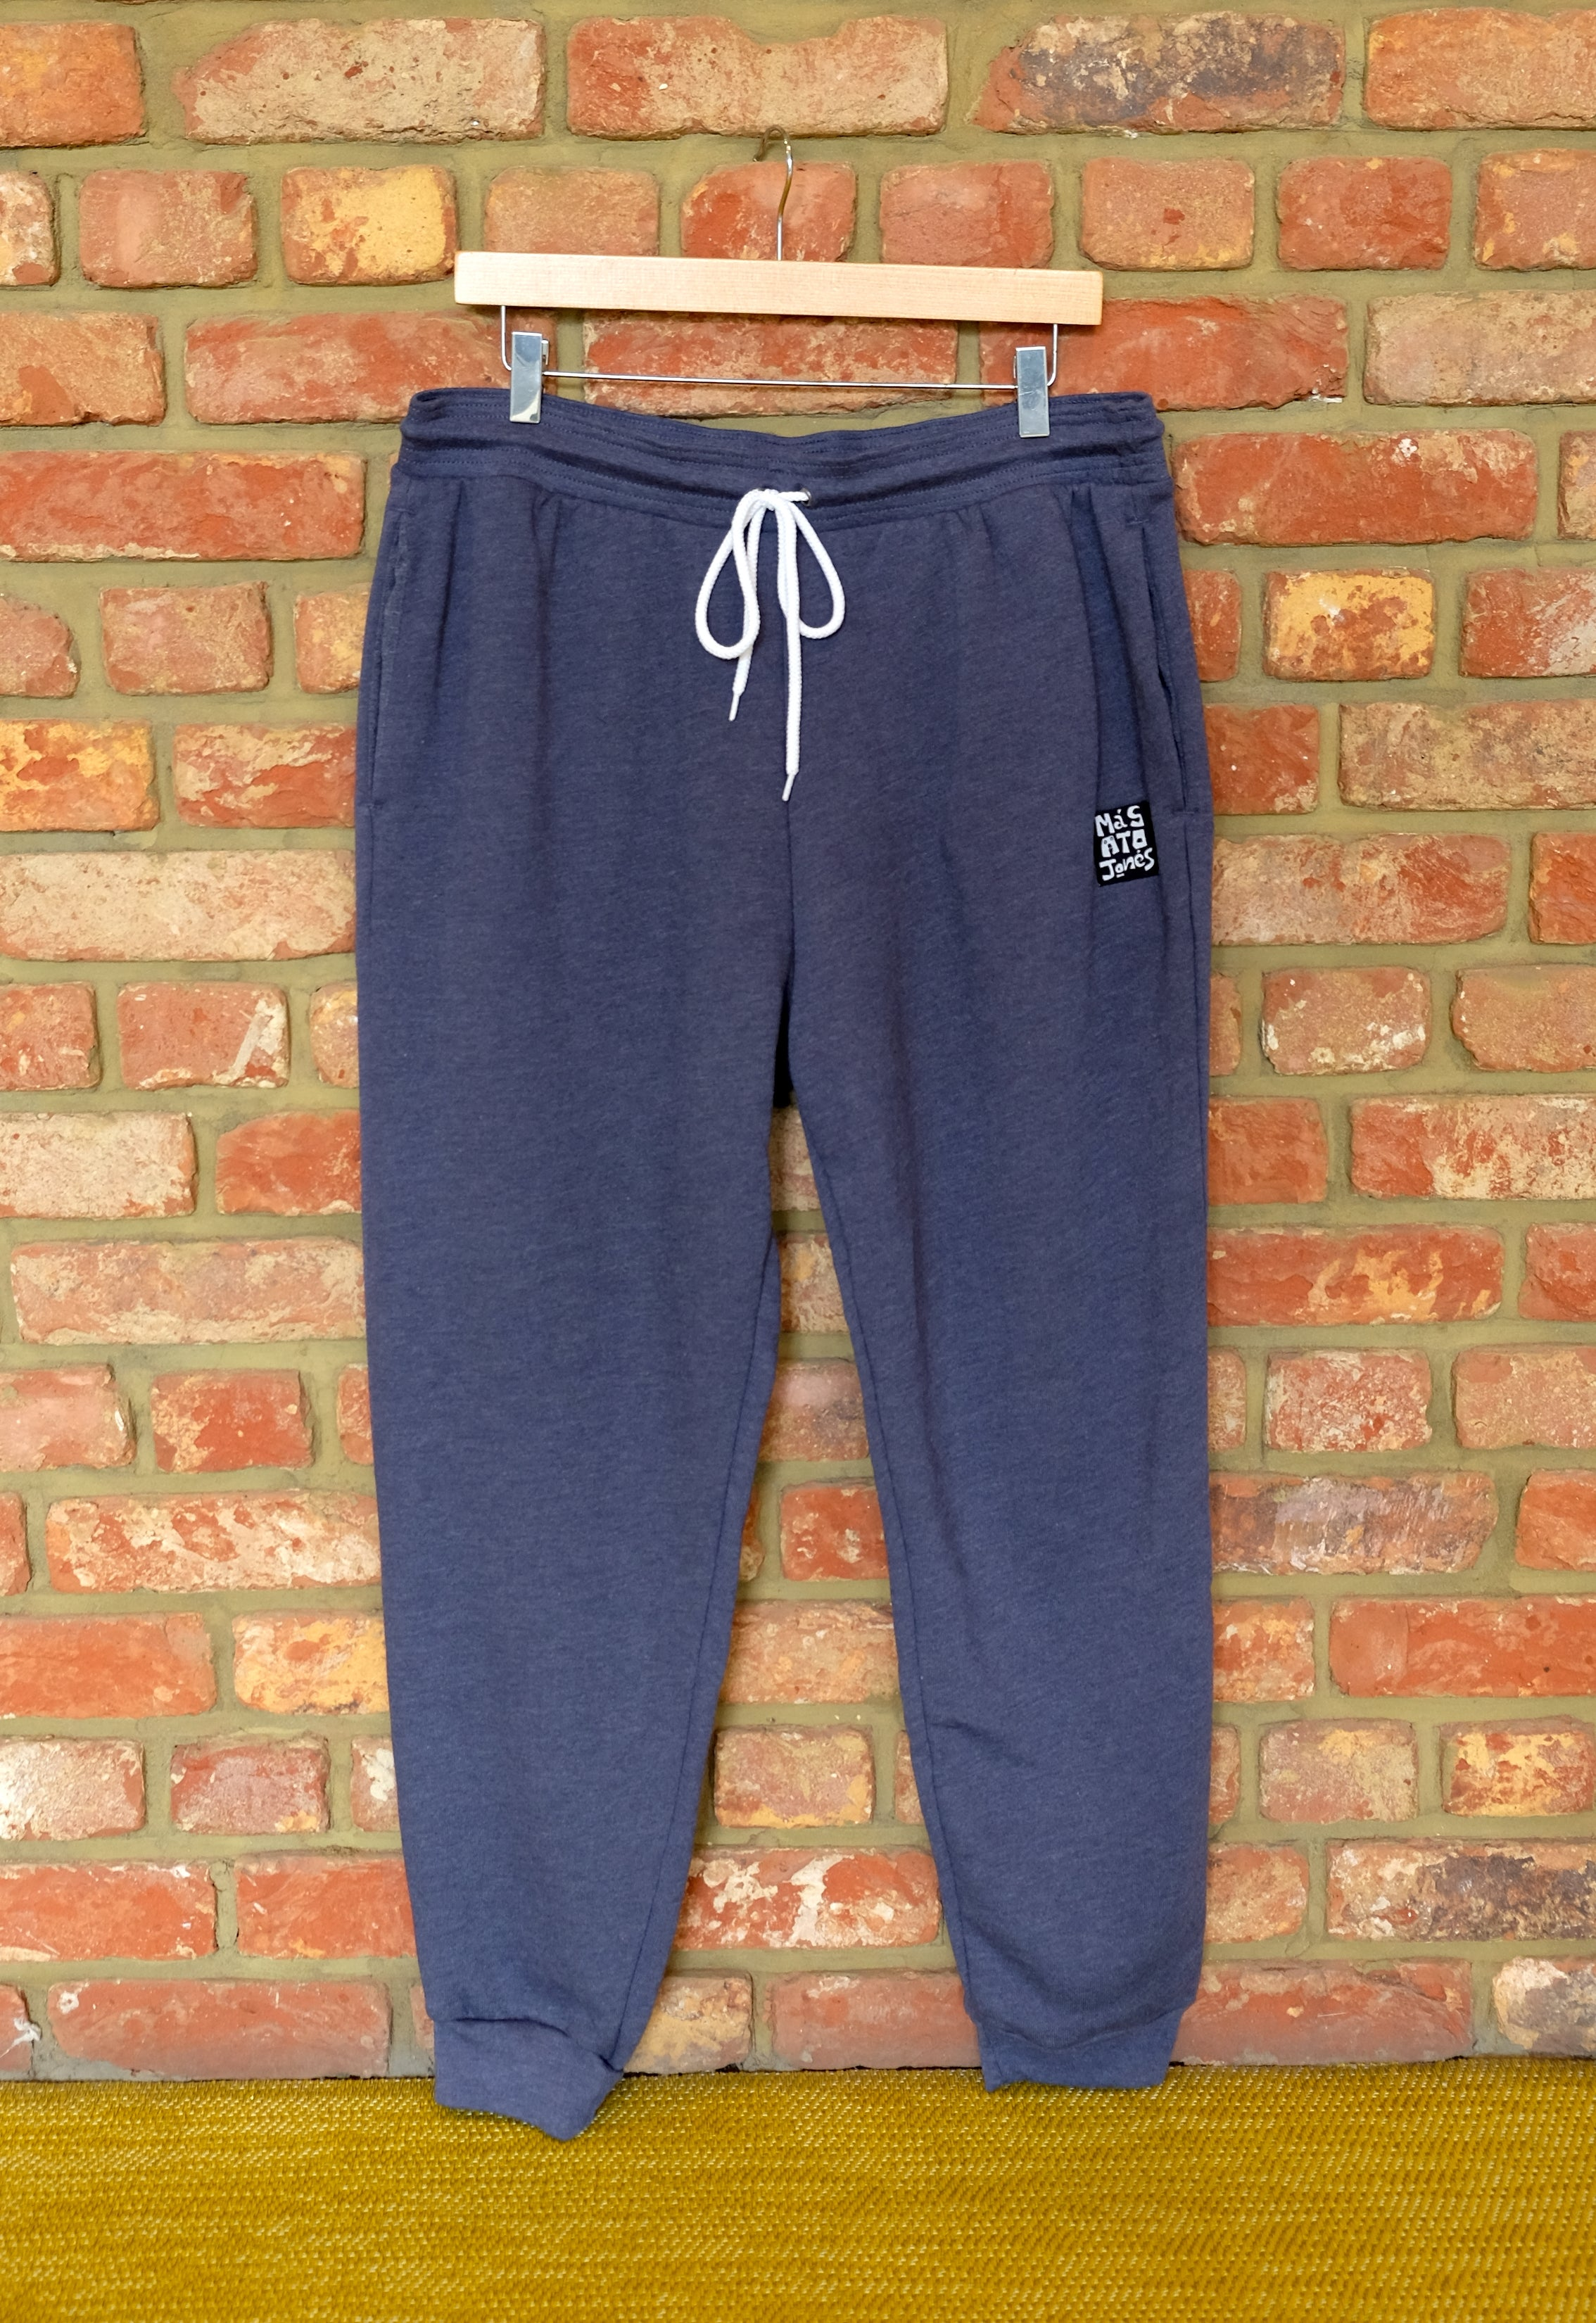 Cotton Fleece Unisex Jogger pants - HEATHER NAVY